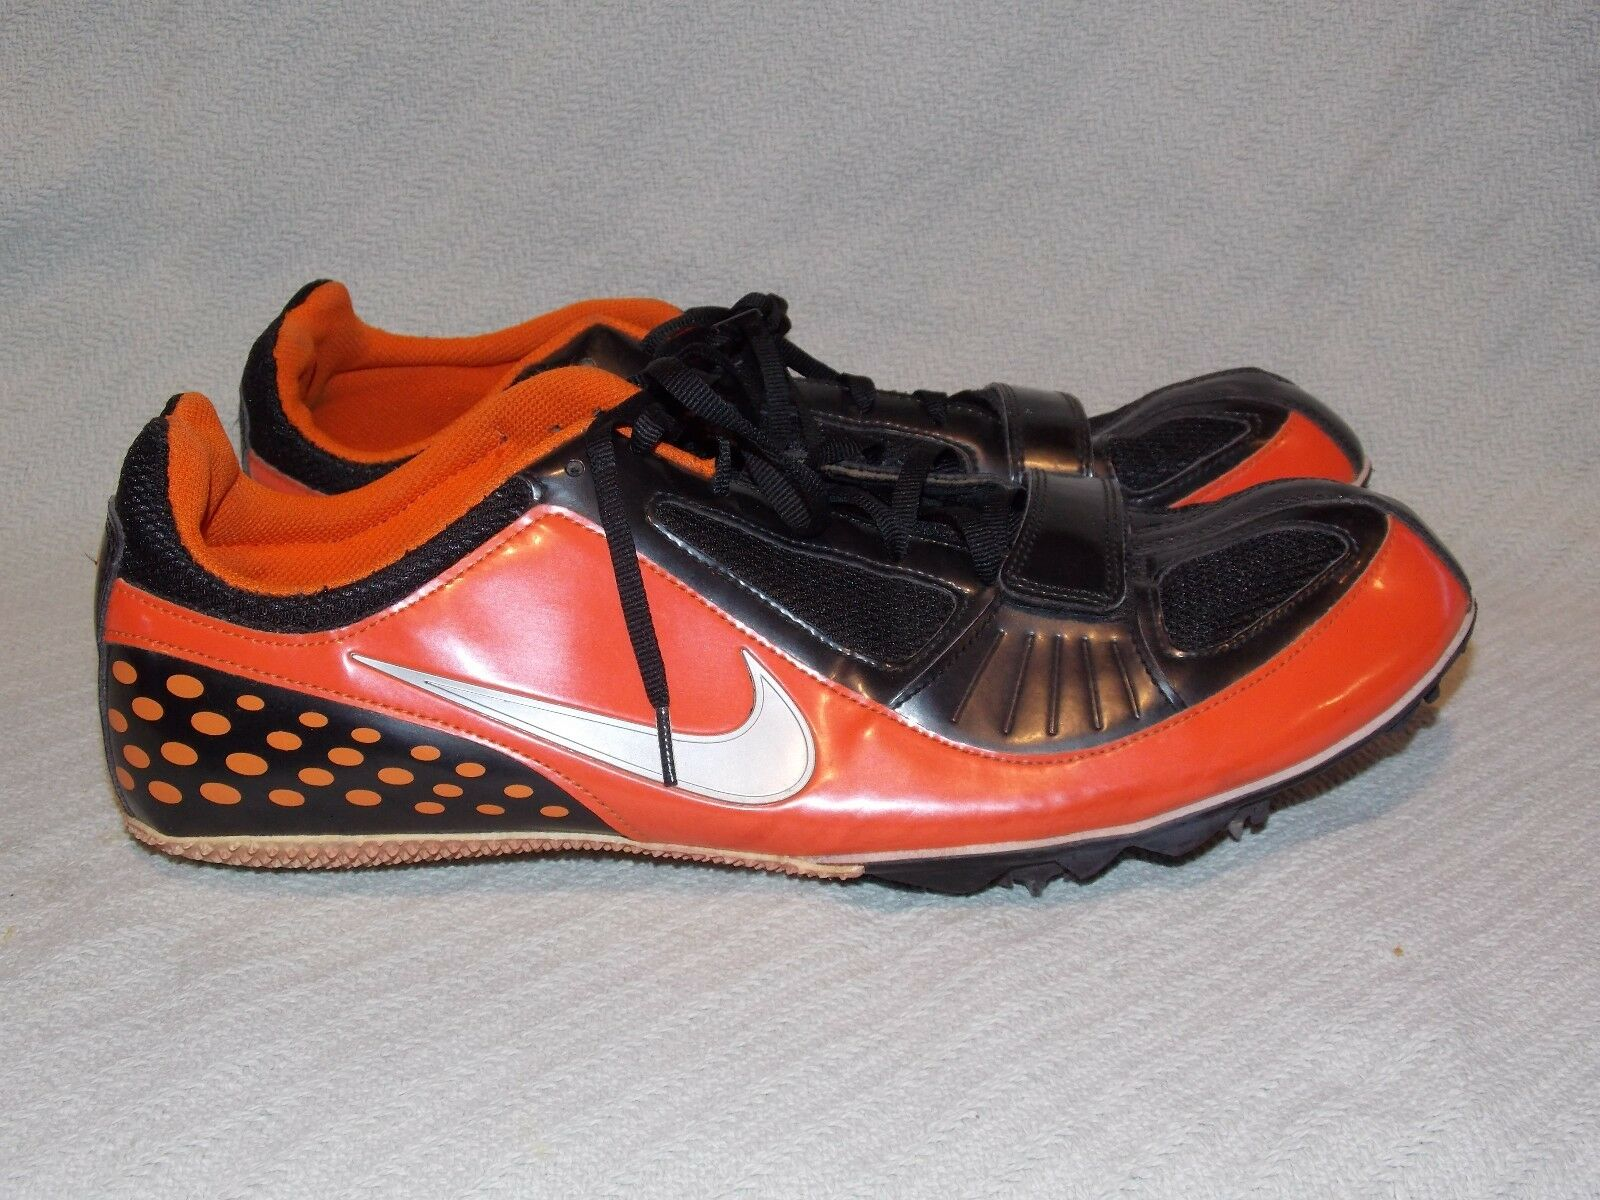 NIKE SPRINT Zoom Rival Black and Orange Track & Field CLEATS 388430-007 Comfortable  best-selling model of the brand